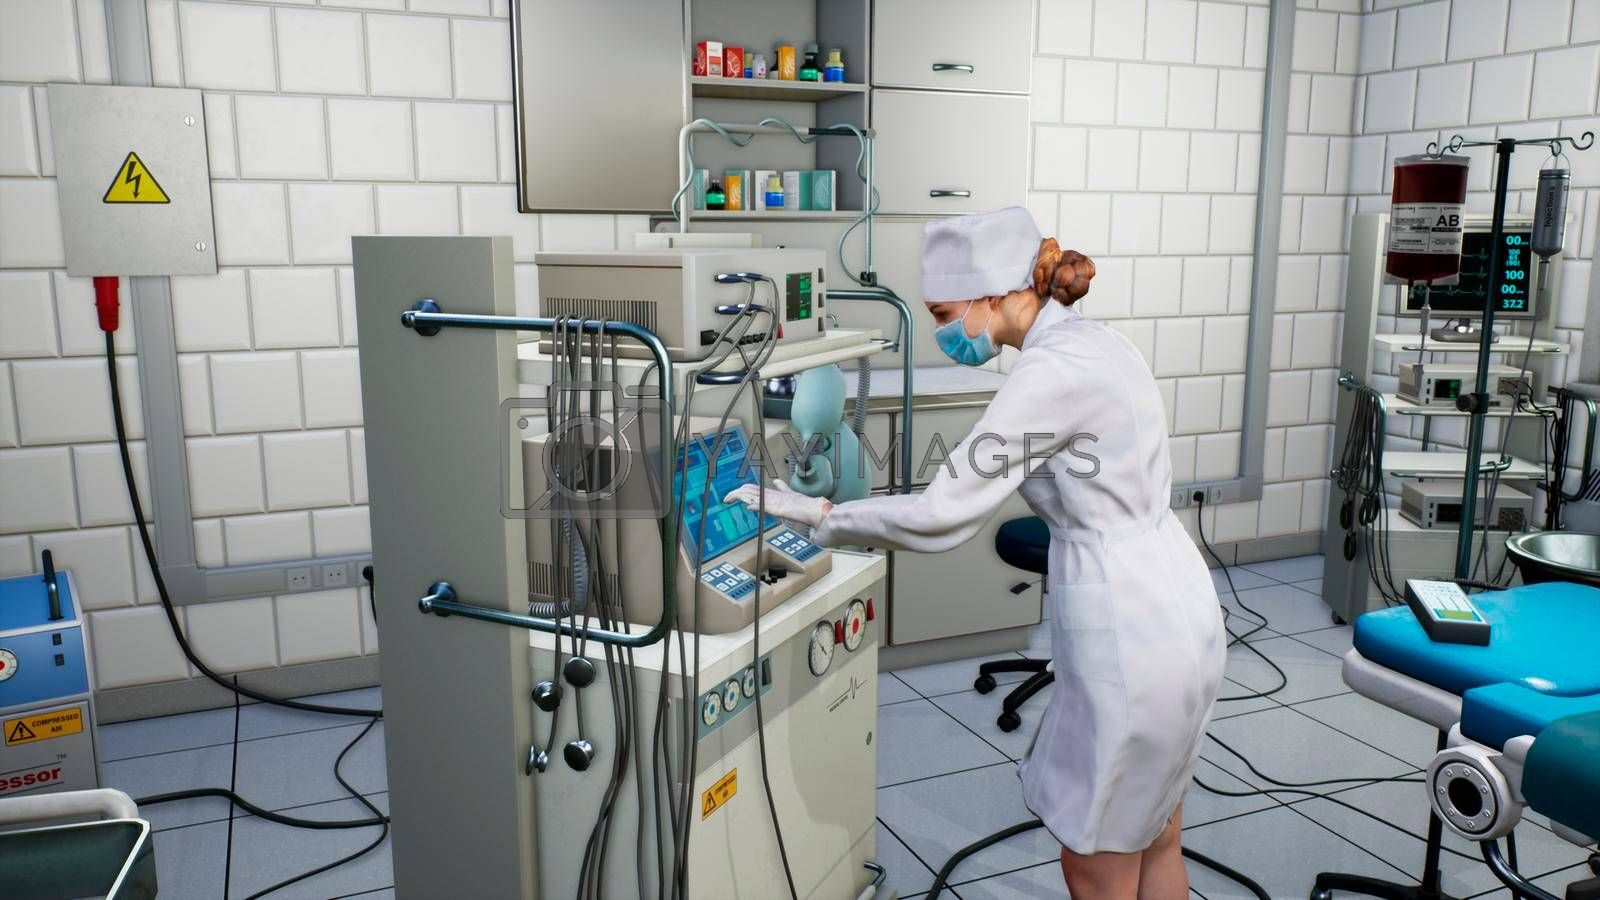 A female medical scientist works with a touchscreen computer in a medical lab.